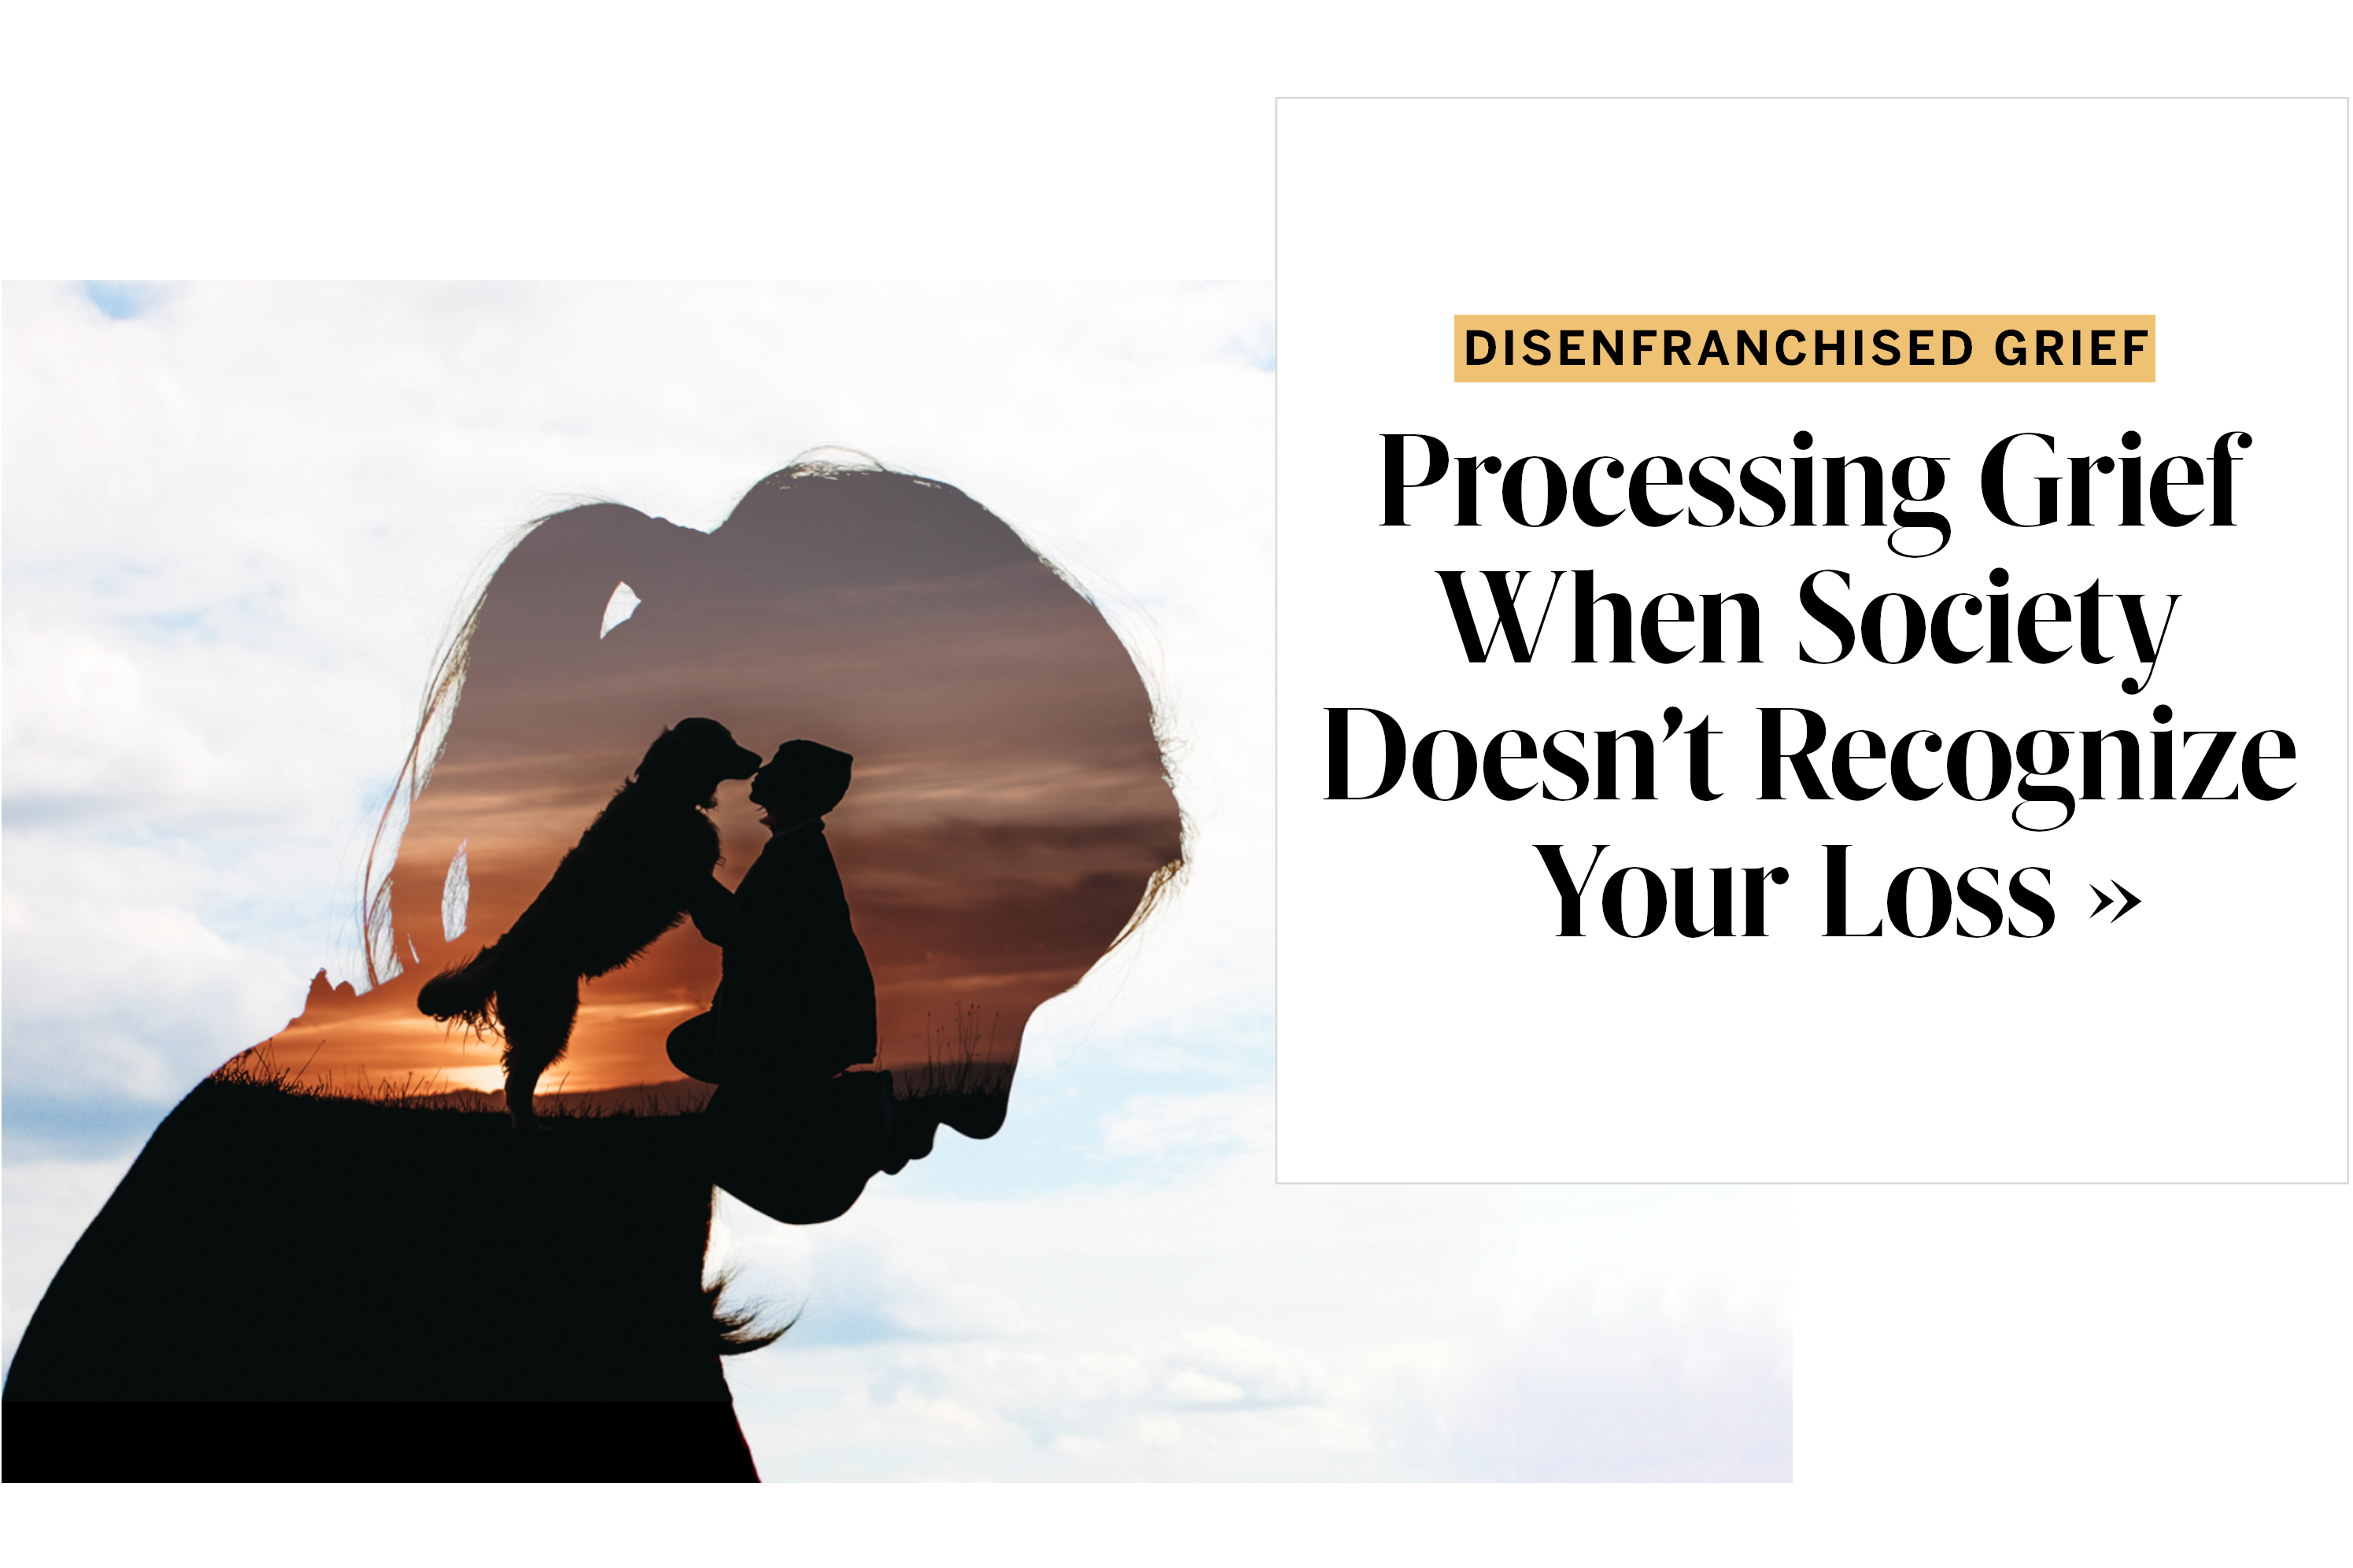 Disenfranchised Grief Might Be the Hardest Kind to Process—Here's What It Is and Why, According to Experts